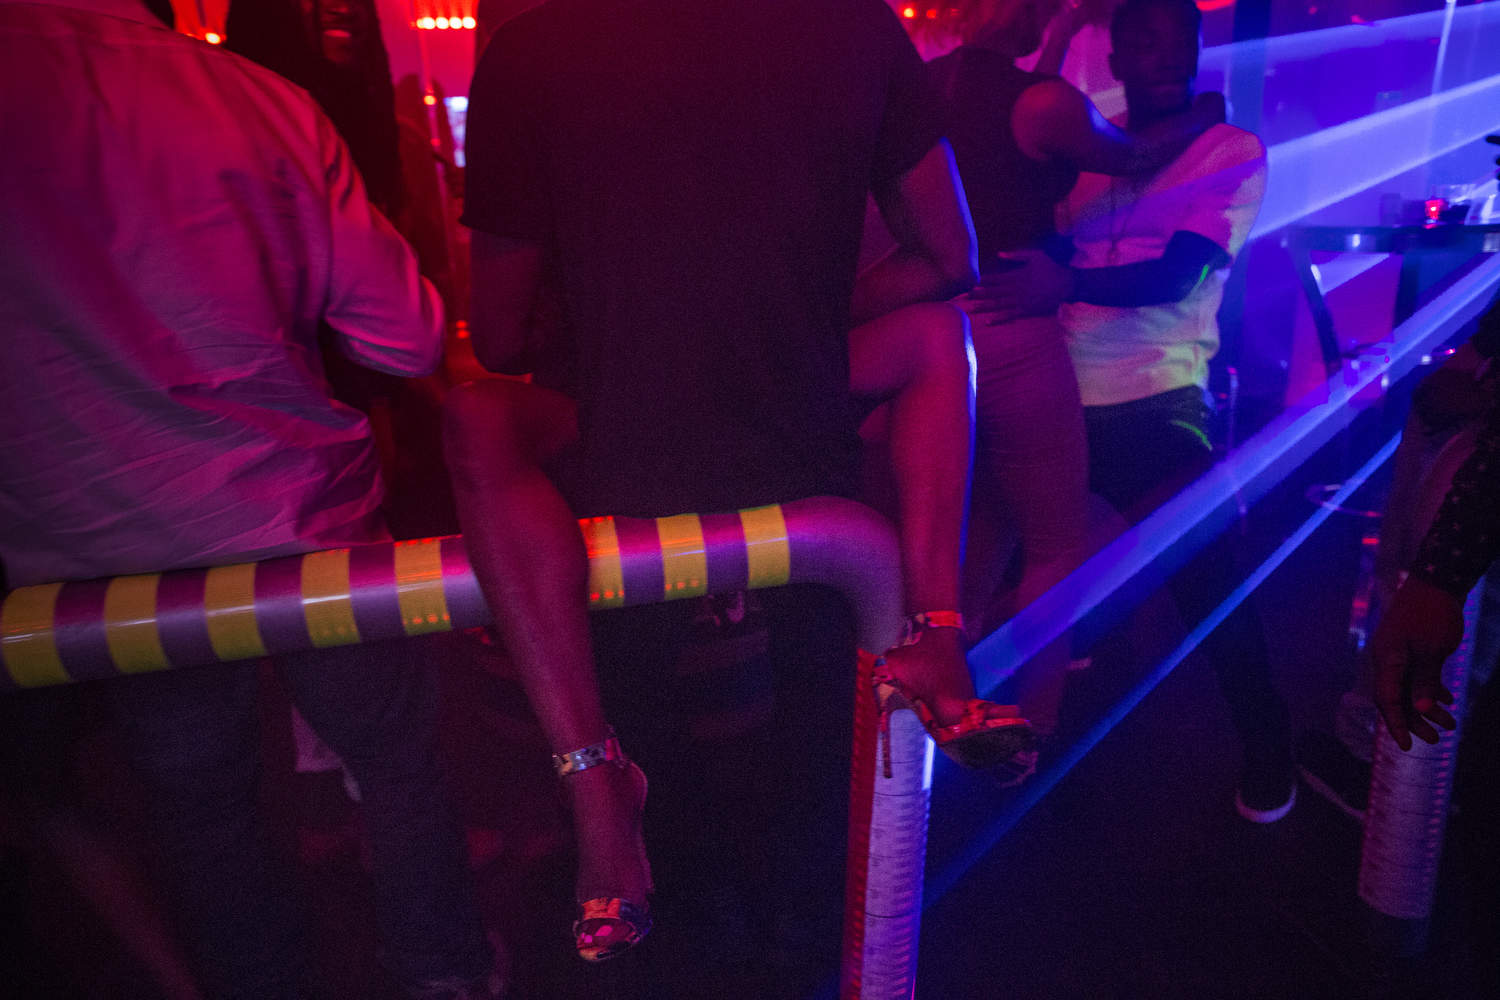 People dance the night away at Quilox, a popular upscale club in Lagos, Nigeria.